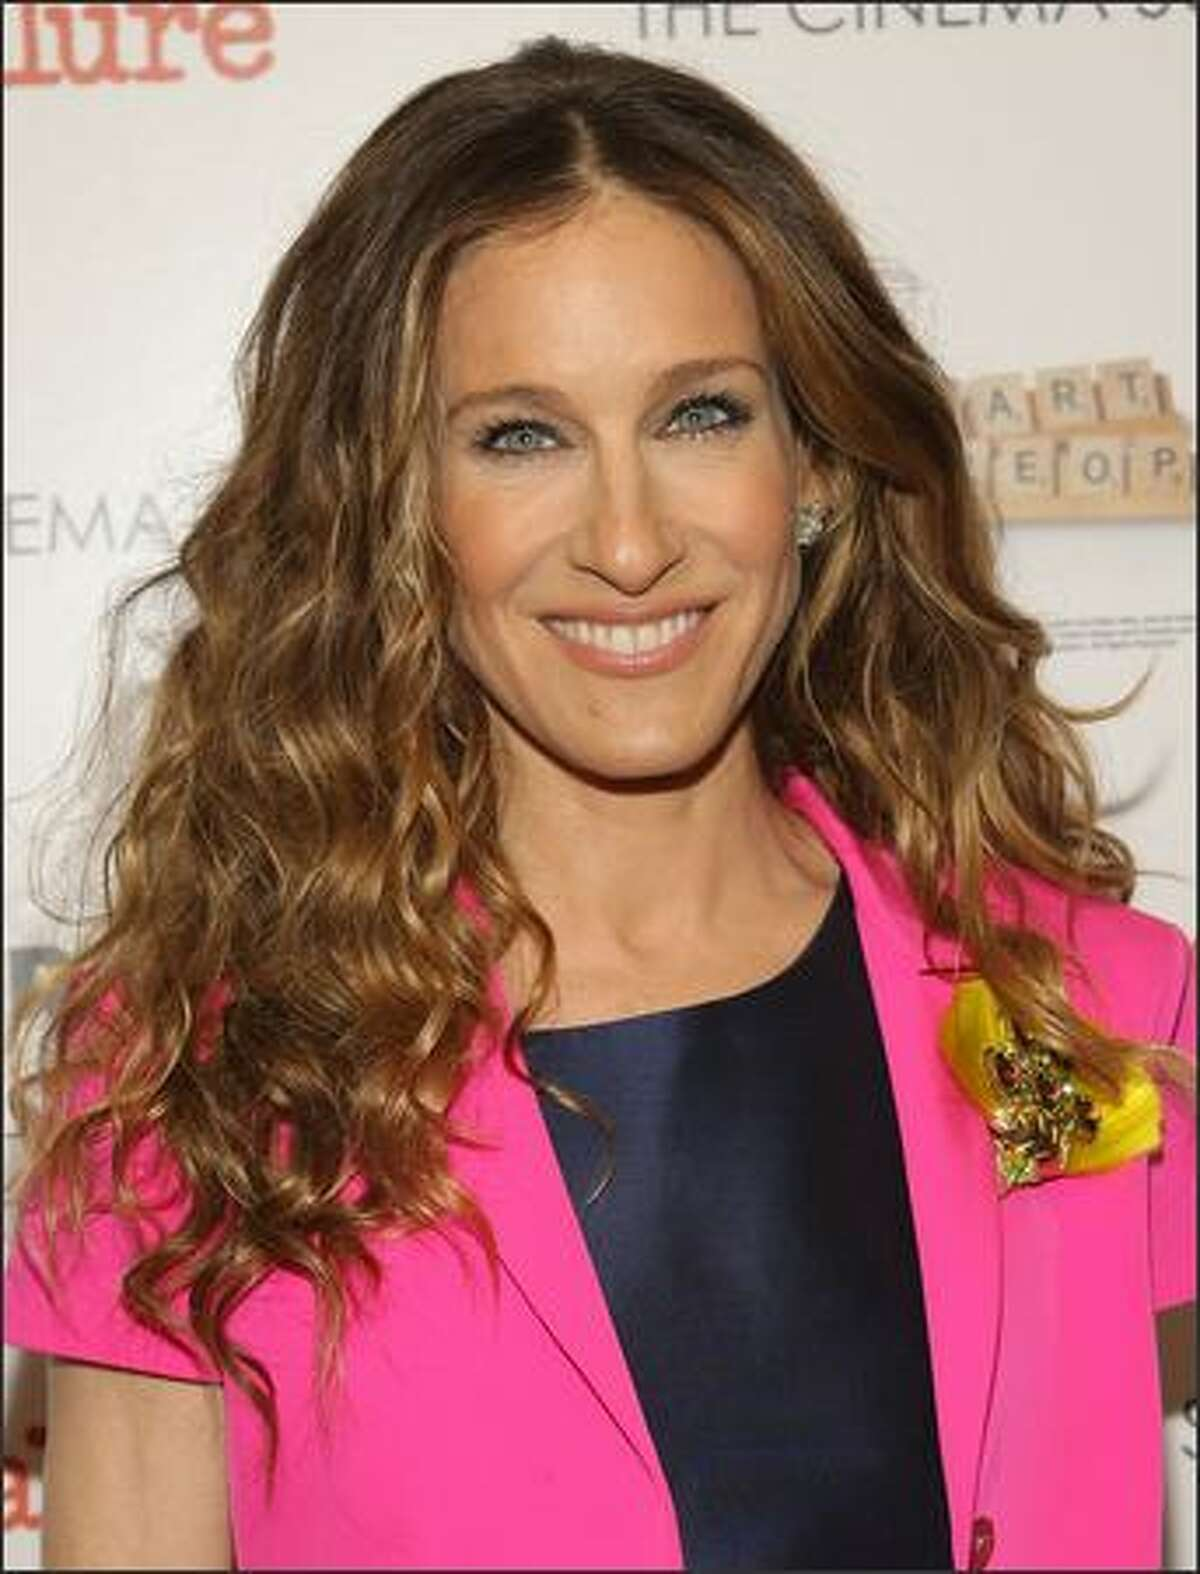 """Actress Sarah Jessica Parker attends """"Smart People"""" screening hosted by the Cinema Society & Linda Wells at the Landmark Sunshine Theater on Monday in New York City."""